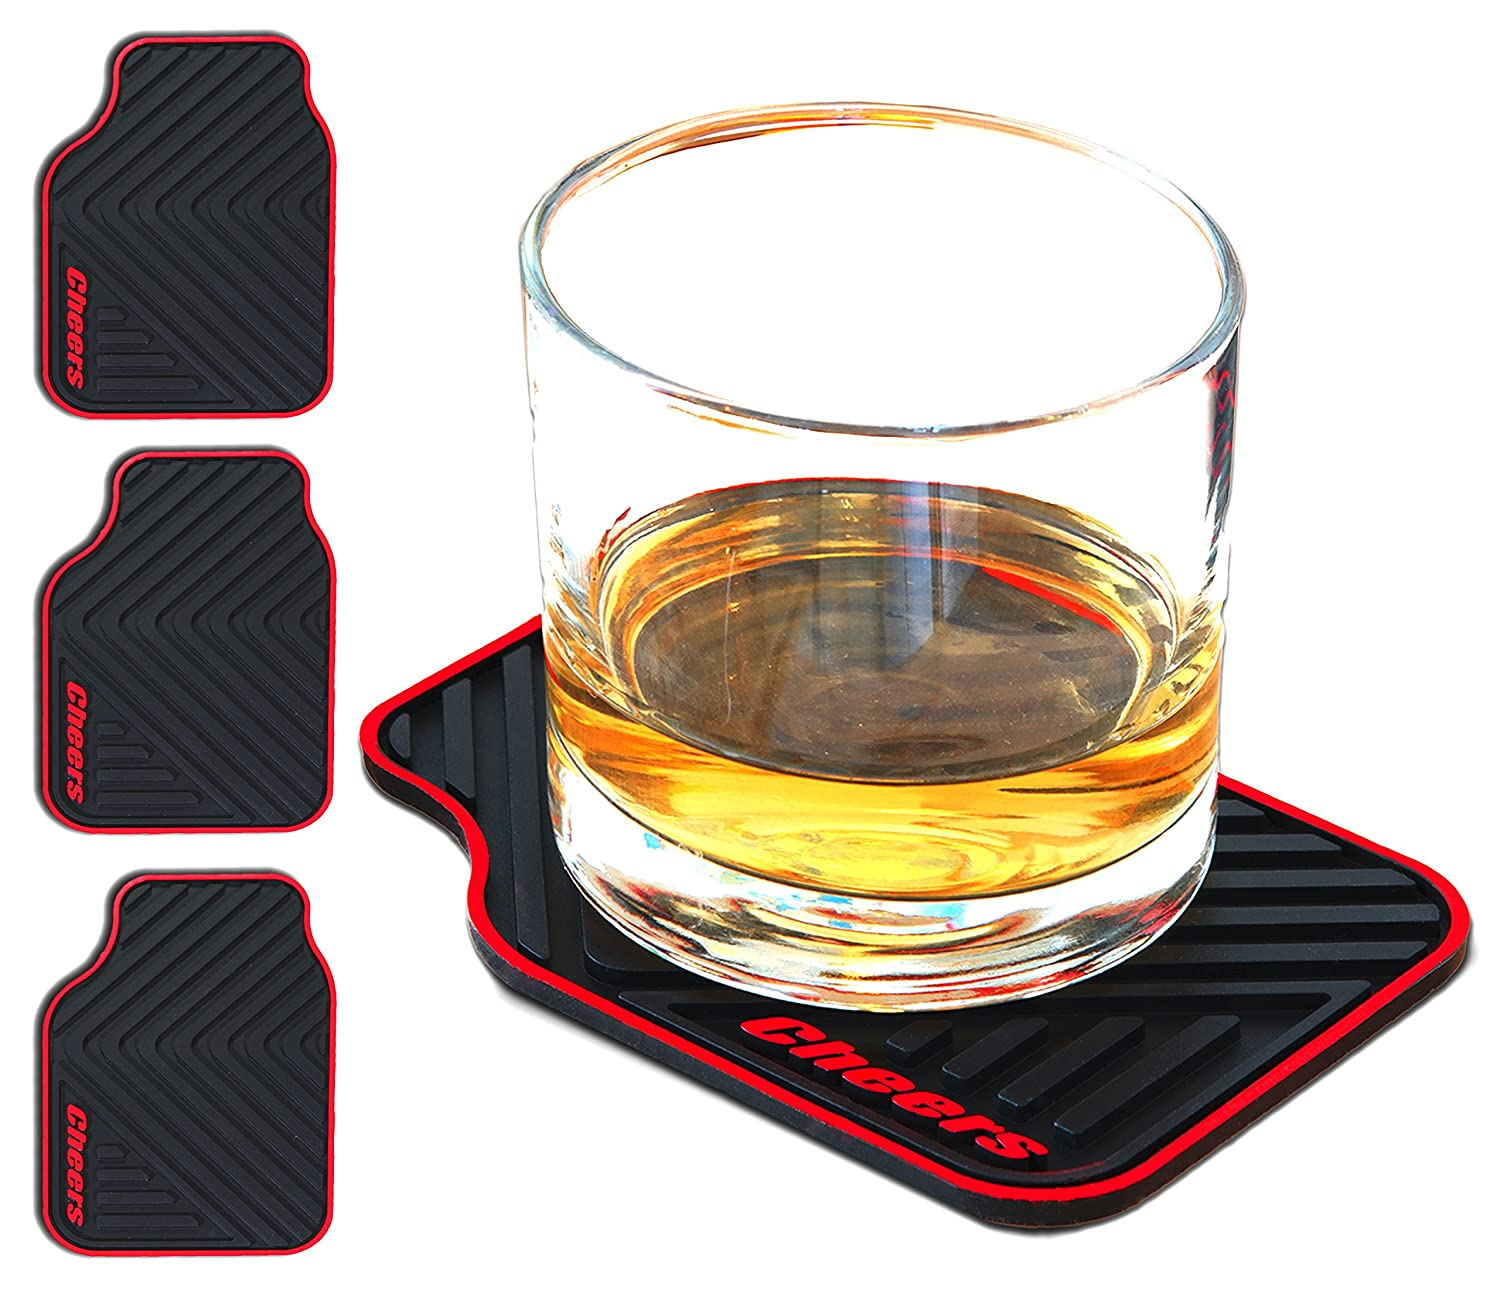 Janazala ARTORI Silicone Drink Coasters Funny Cars Enthusiast Themed Gifts Ideas For Men Car Lovers Birthday Presents Him And Her Guys Man Cave